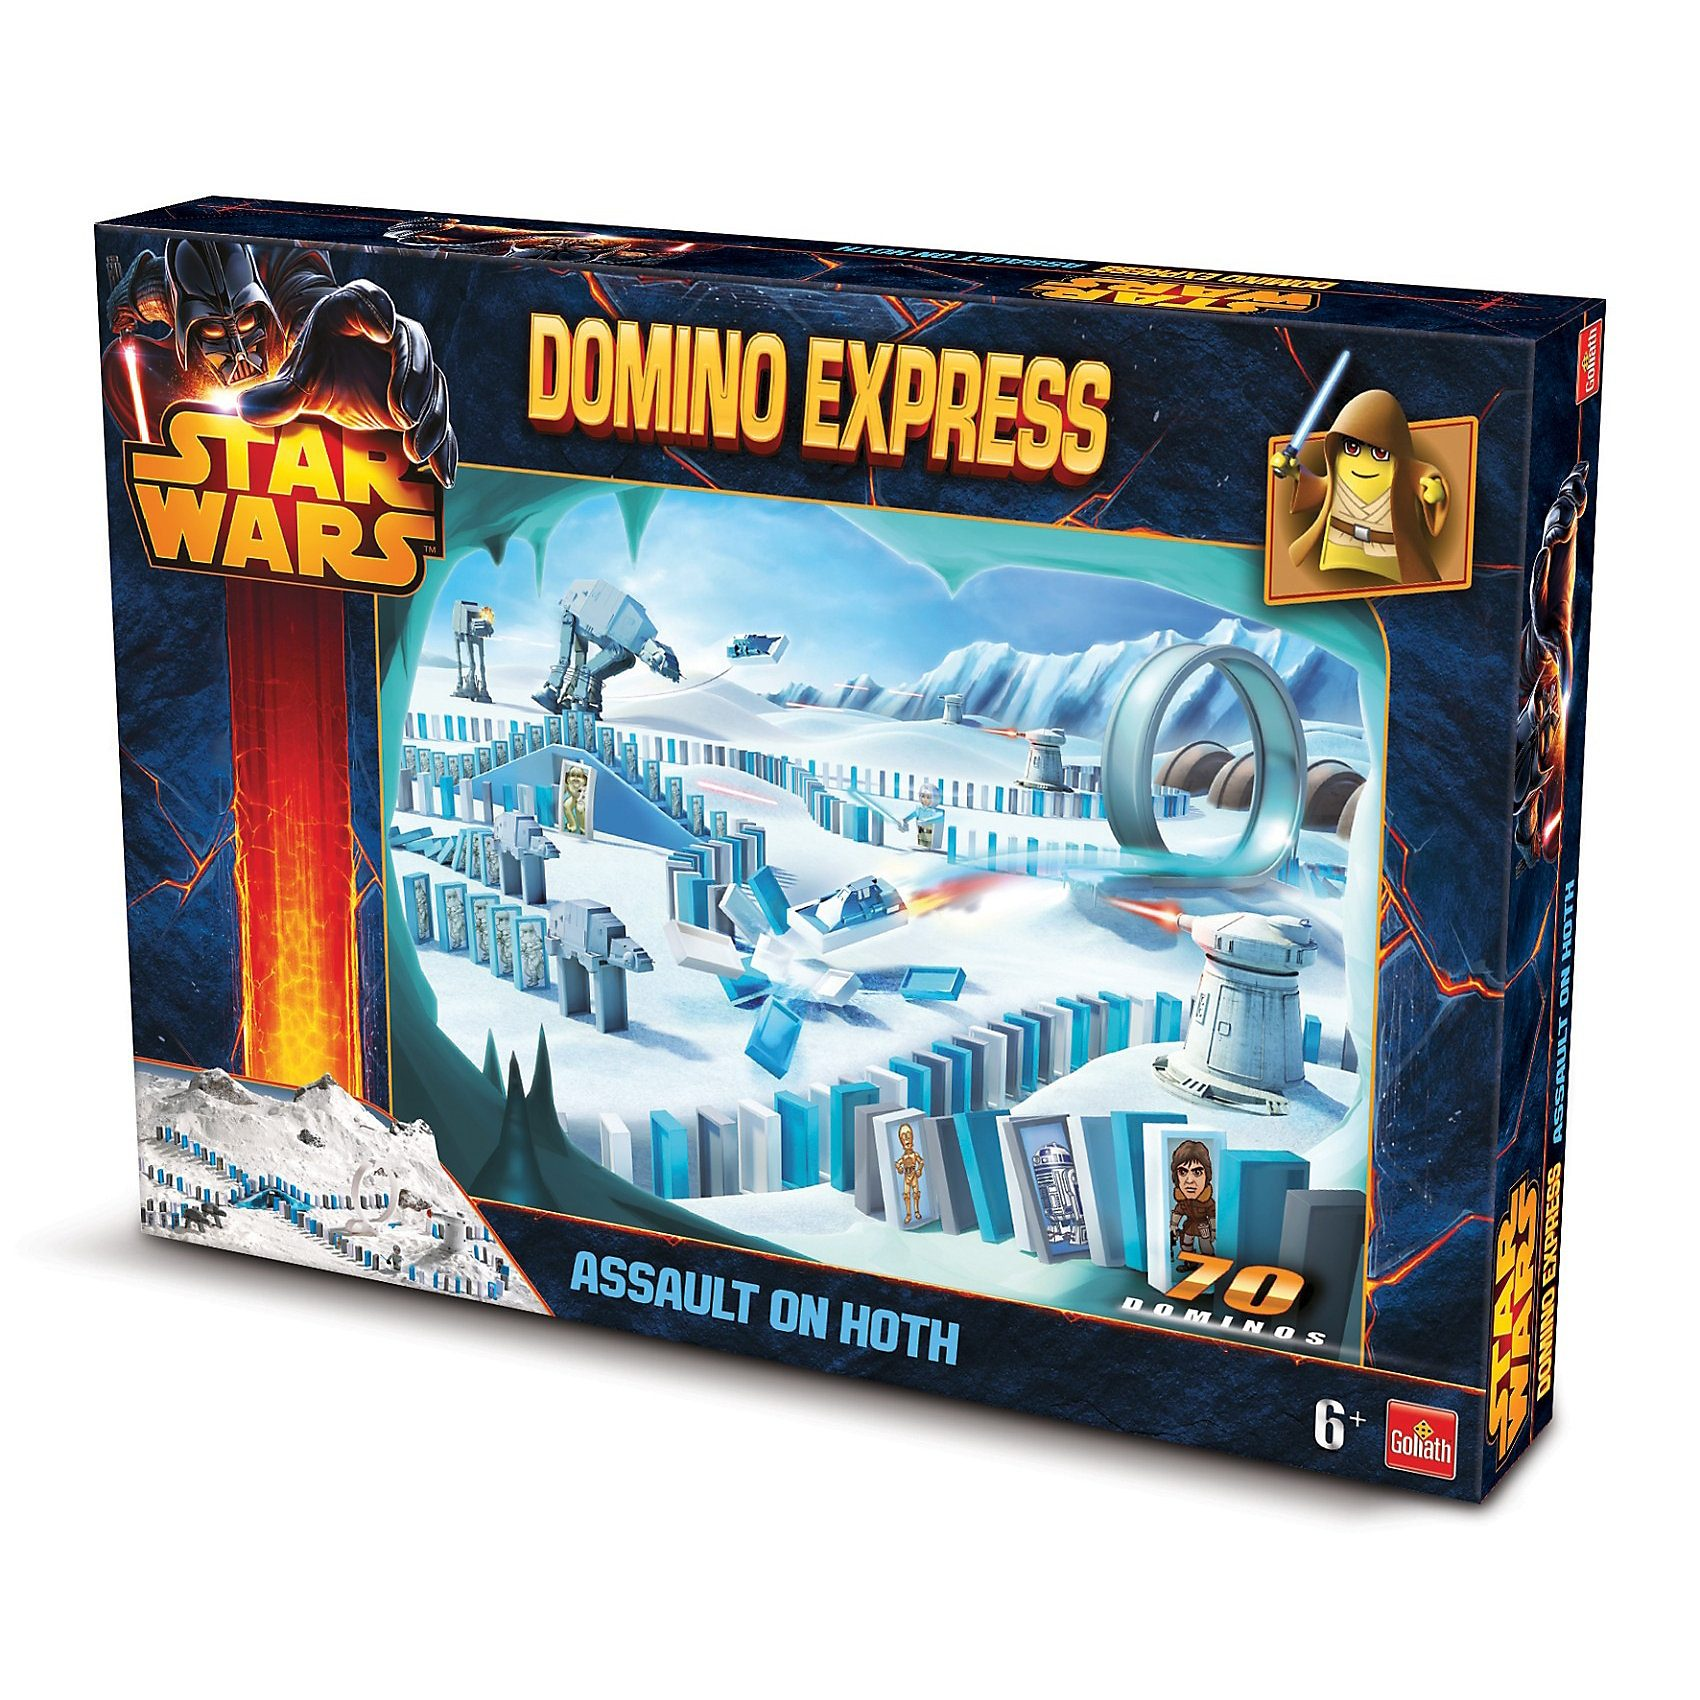 Goliath® Domino Express Star Wars Set Assault on Hoth